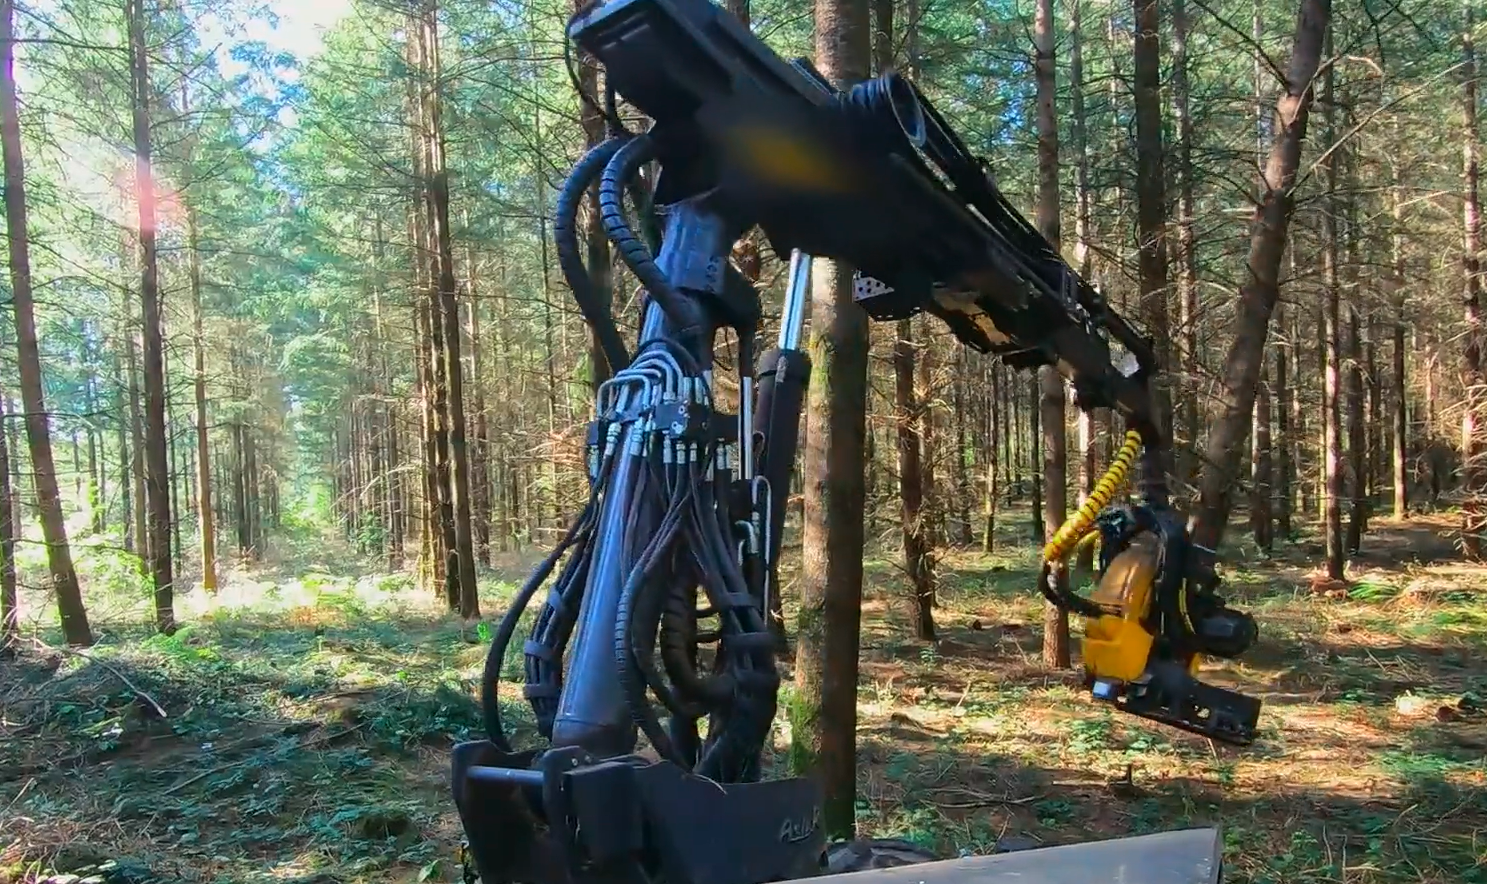 La machine coupe un arbre par minute contre 10 mn pour un bucheron.